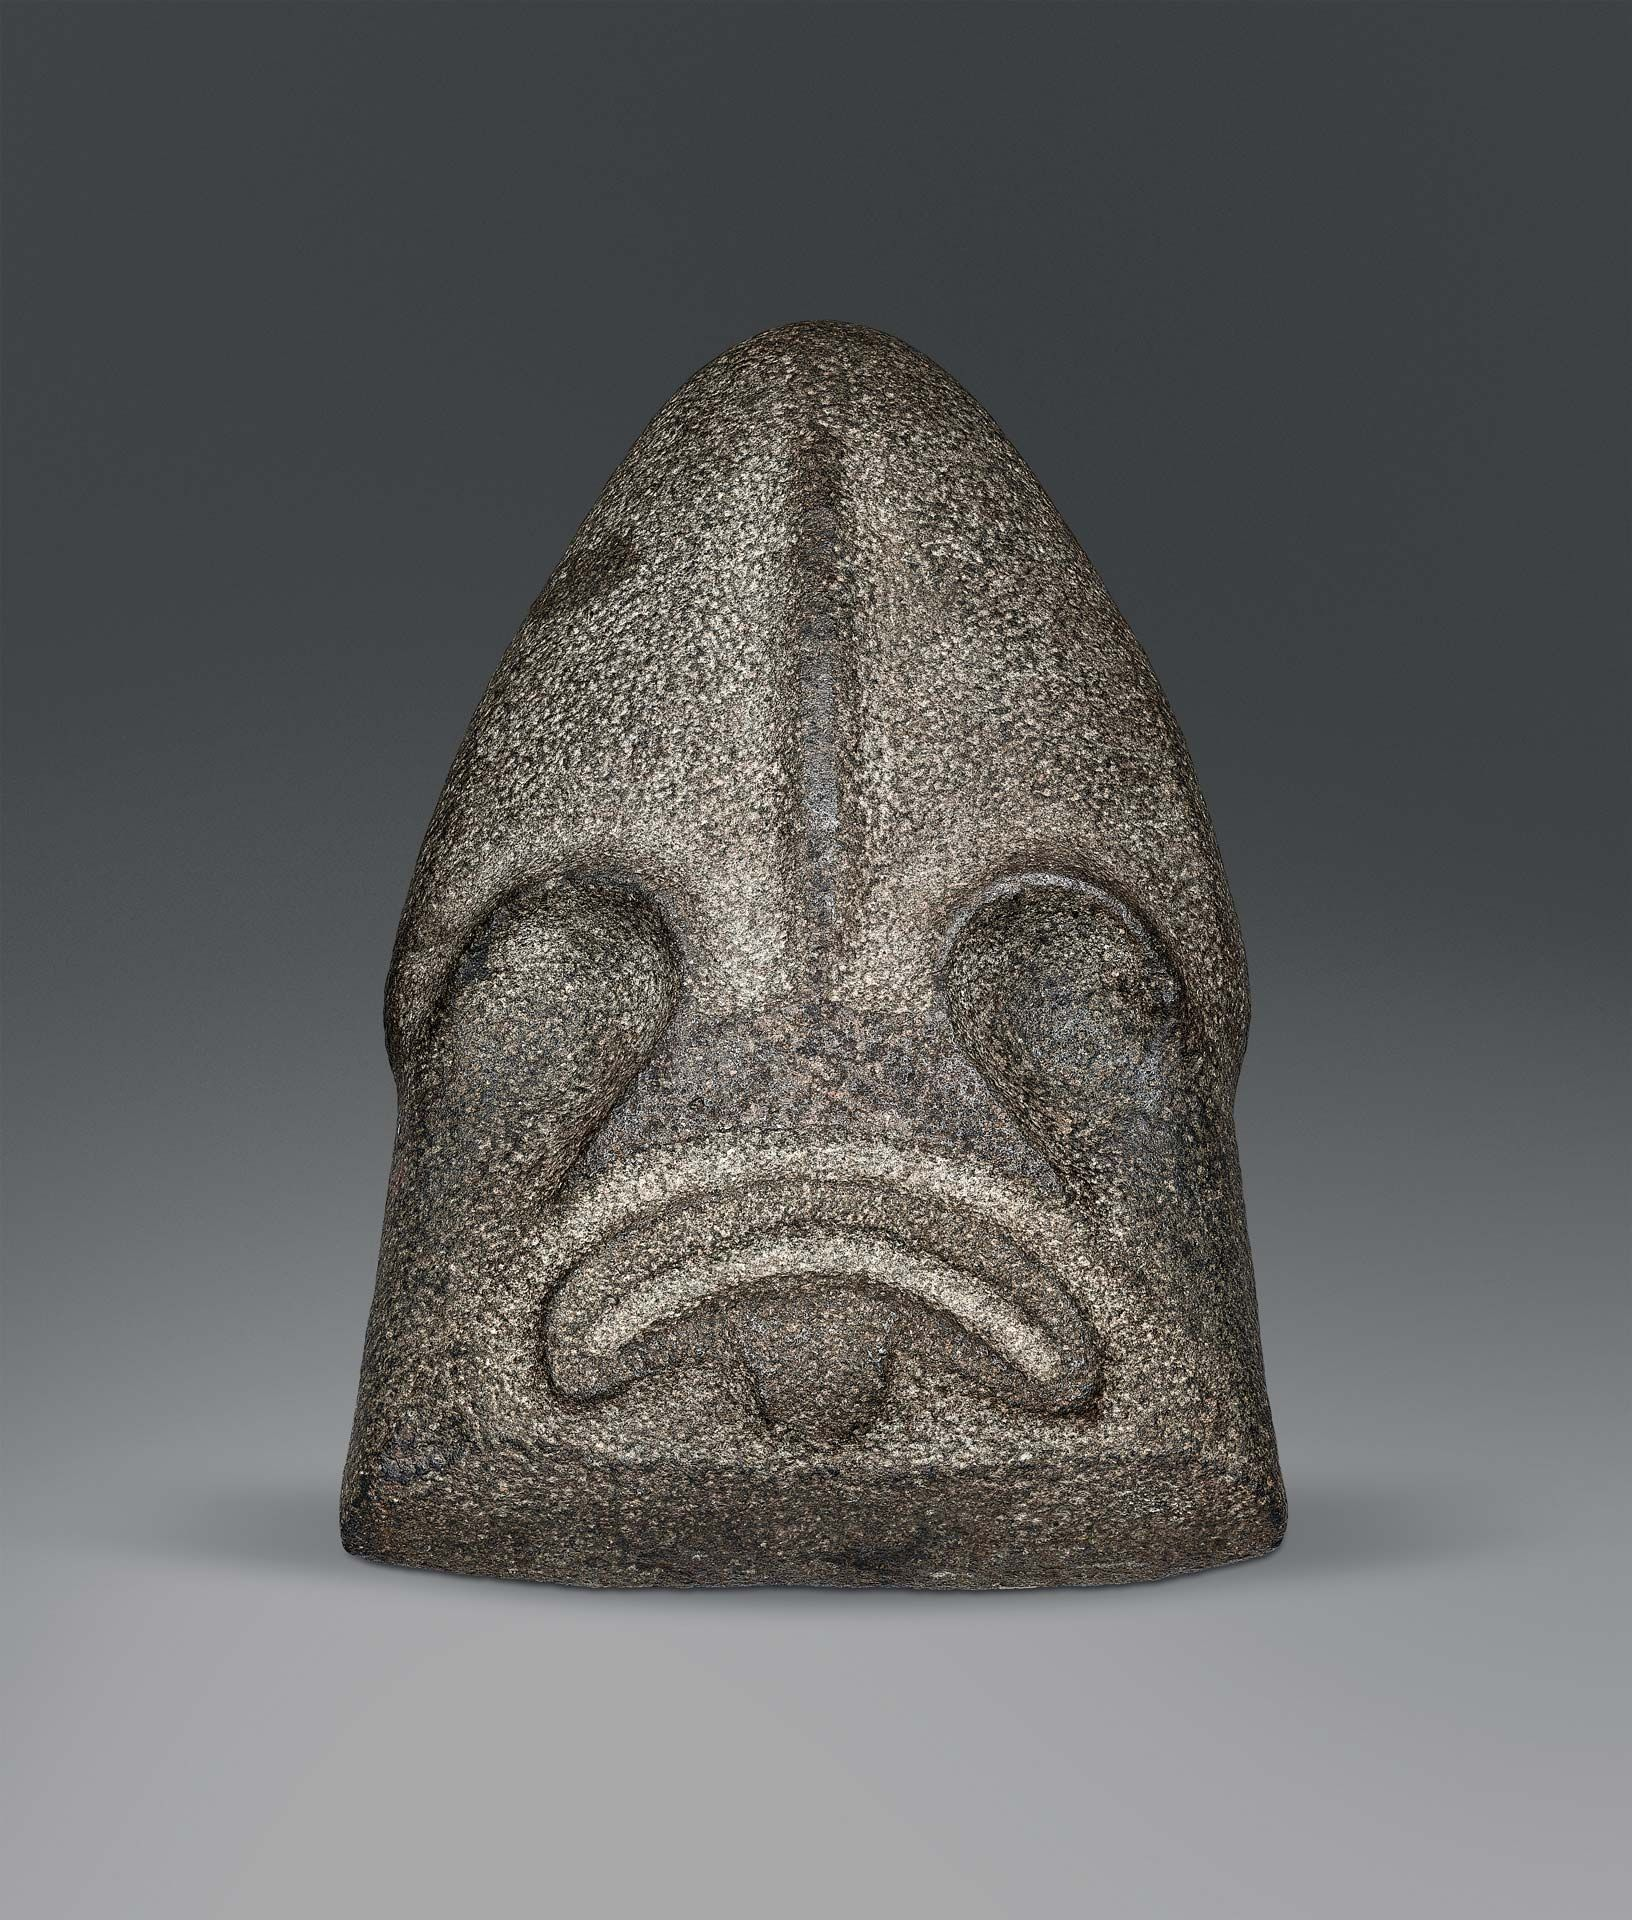 British Columbia, Northwest Coast, Bella Coola, Kwakwaka'wakw, Piledriver head, about 400–1800, stone, 40 x 24.1 x 8.3 cm. Philadelphia Museum of Art, the Louise and Walter Arensberg Collection, 1950. Photo Philadelphia Museum of Art: The Louise and Walter Arensberg Collection, 1950